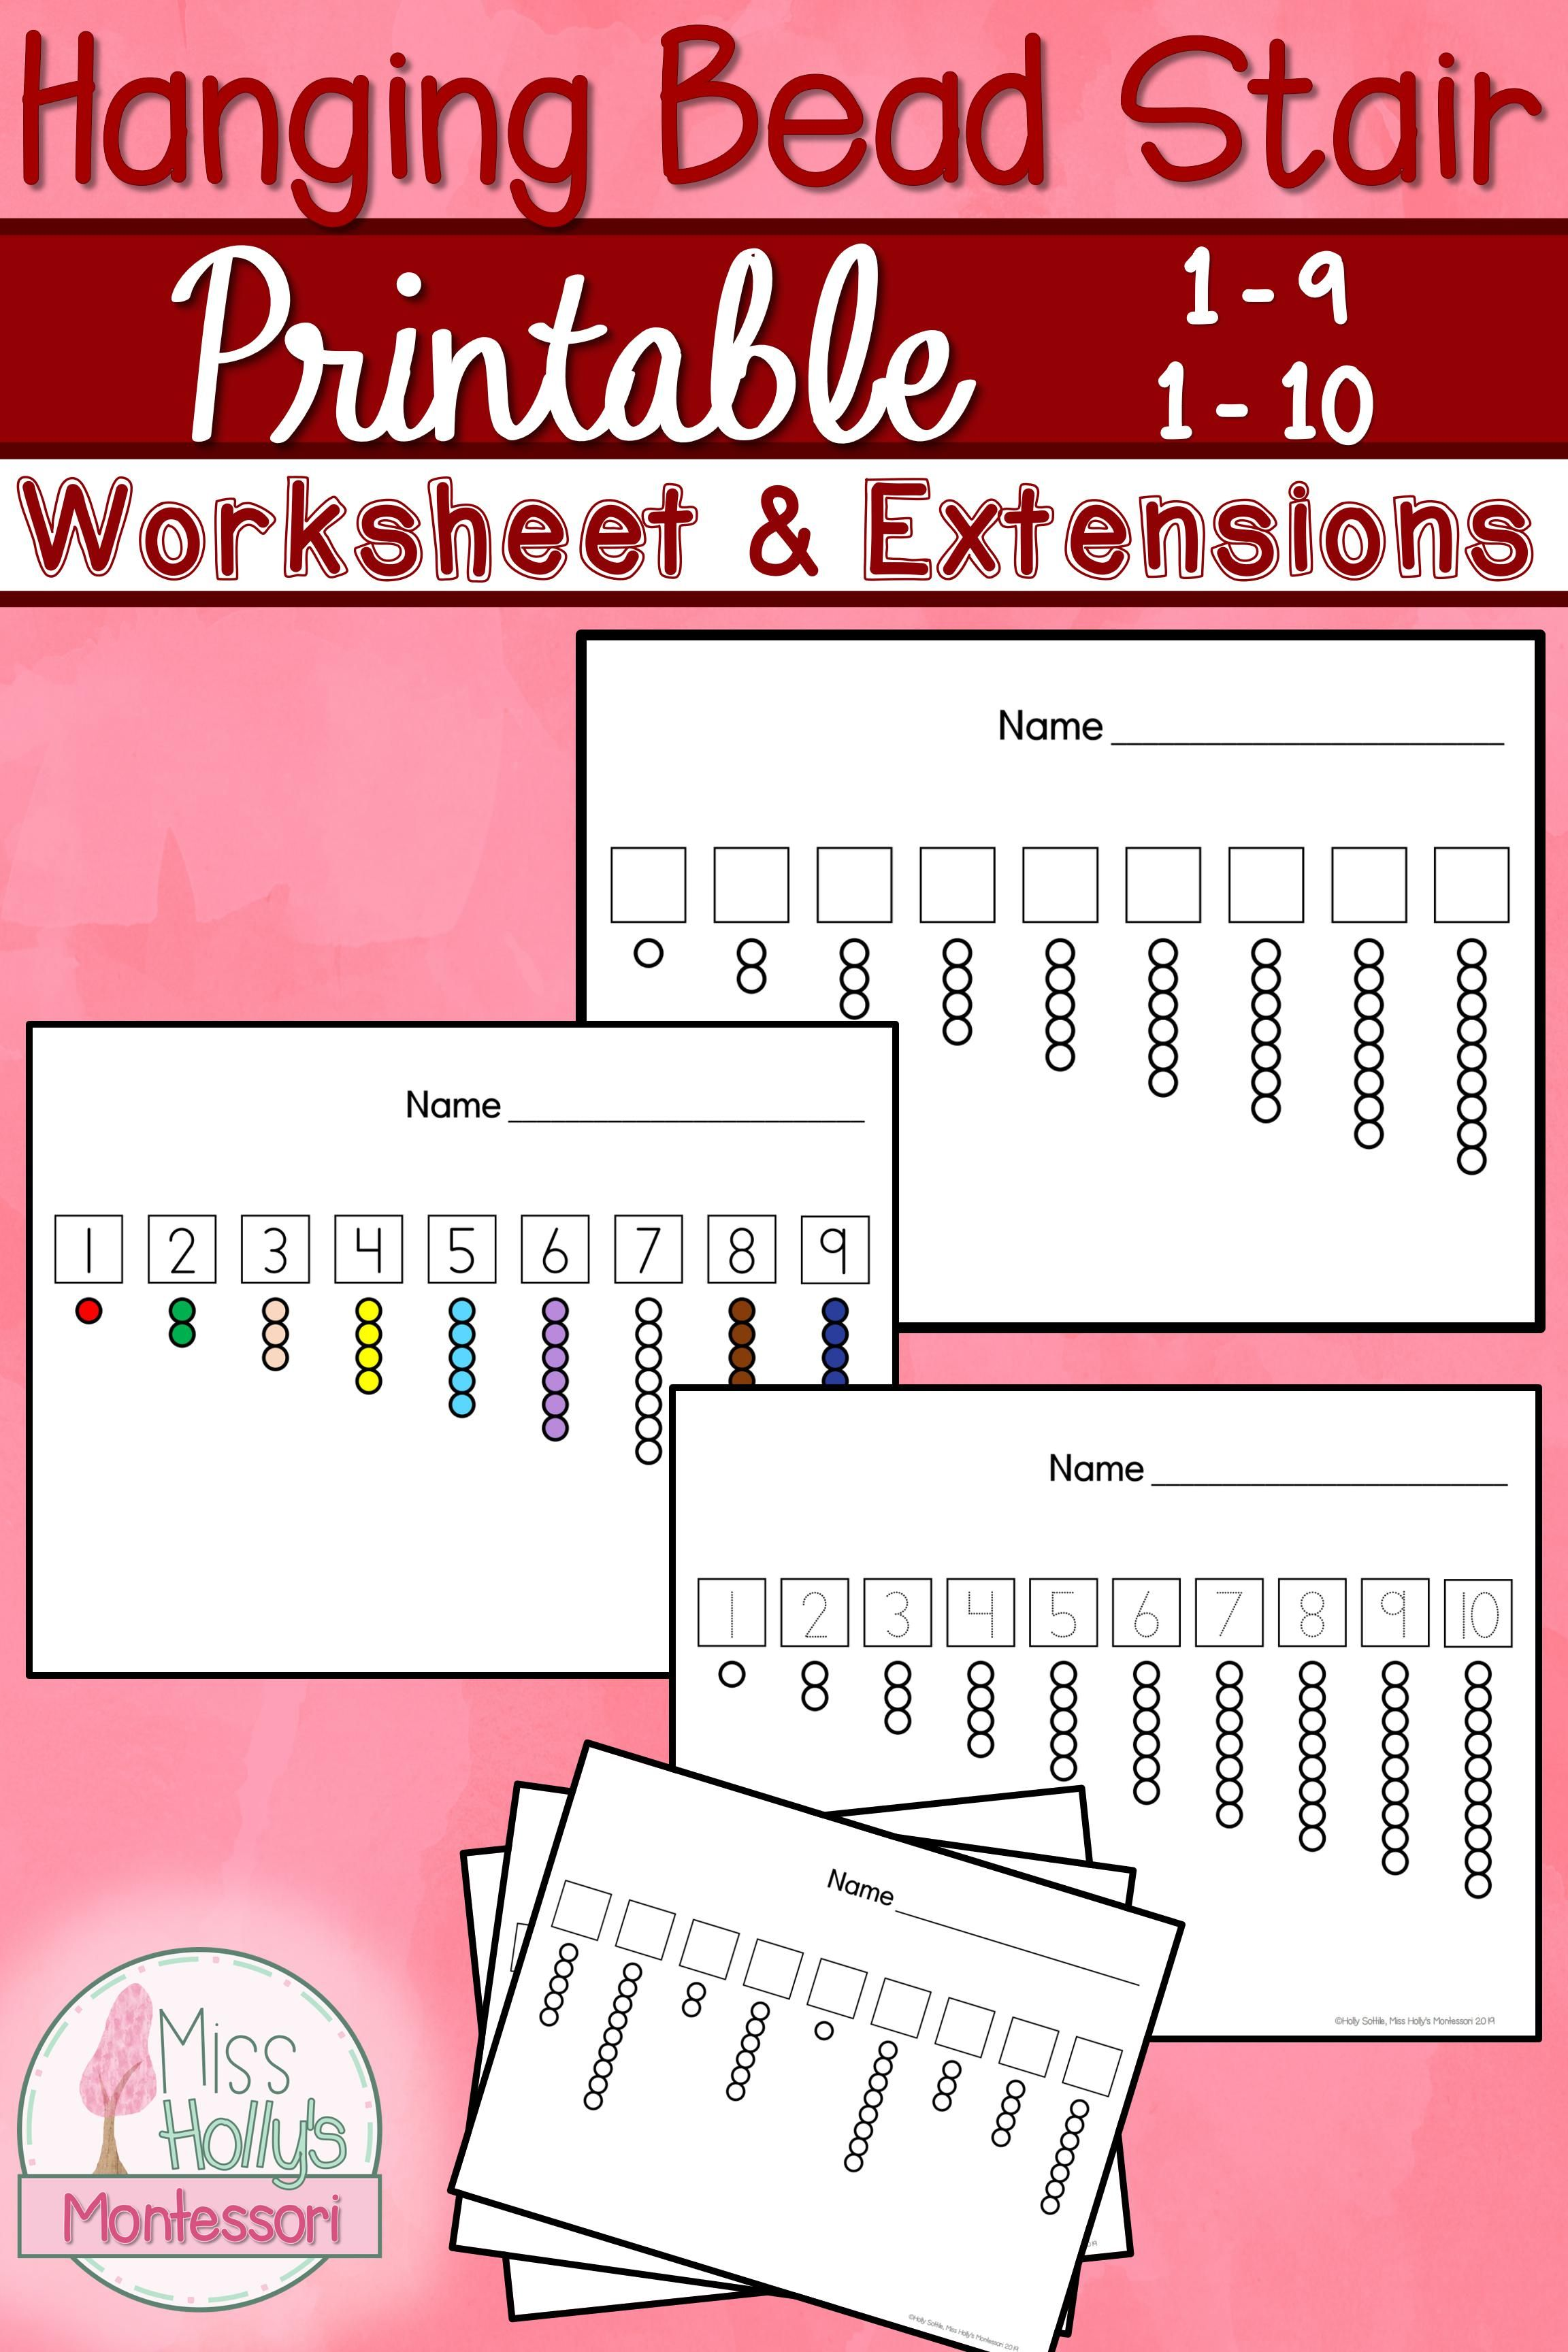 Math Worksheets For Kids Math Worksheets For Teachers Parents And Other Educators Free Printa Math Worksheets Kids Math Worksheets Math Activities Preschool